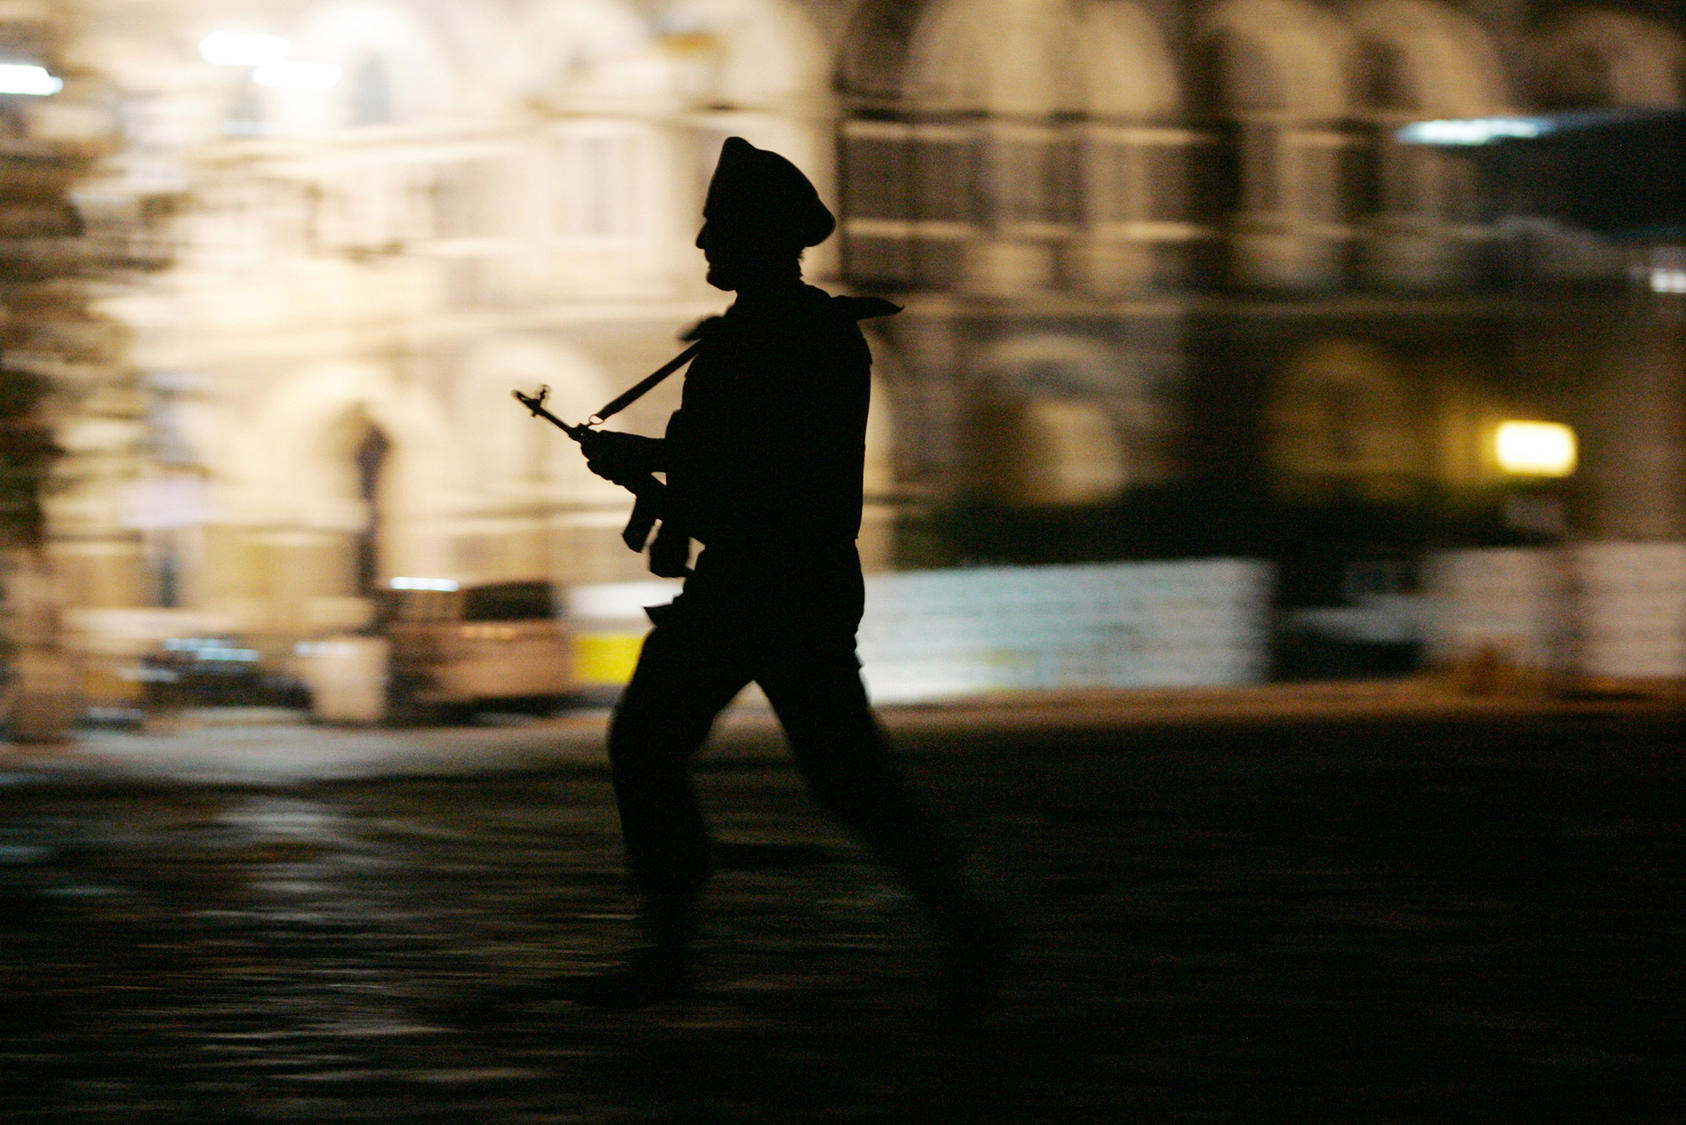 A soldier runs across the courtyard in front of the Taj Mahal Palace & Tower hotel in Mumbai, India, on Friday night, Nov. 28, 2008. (Amiran White/The New York Times)